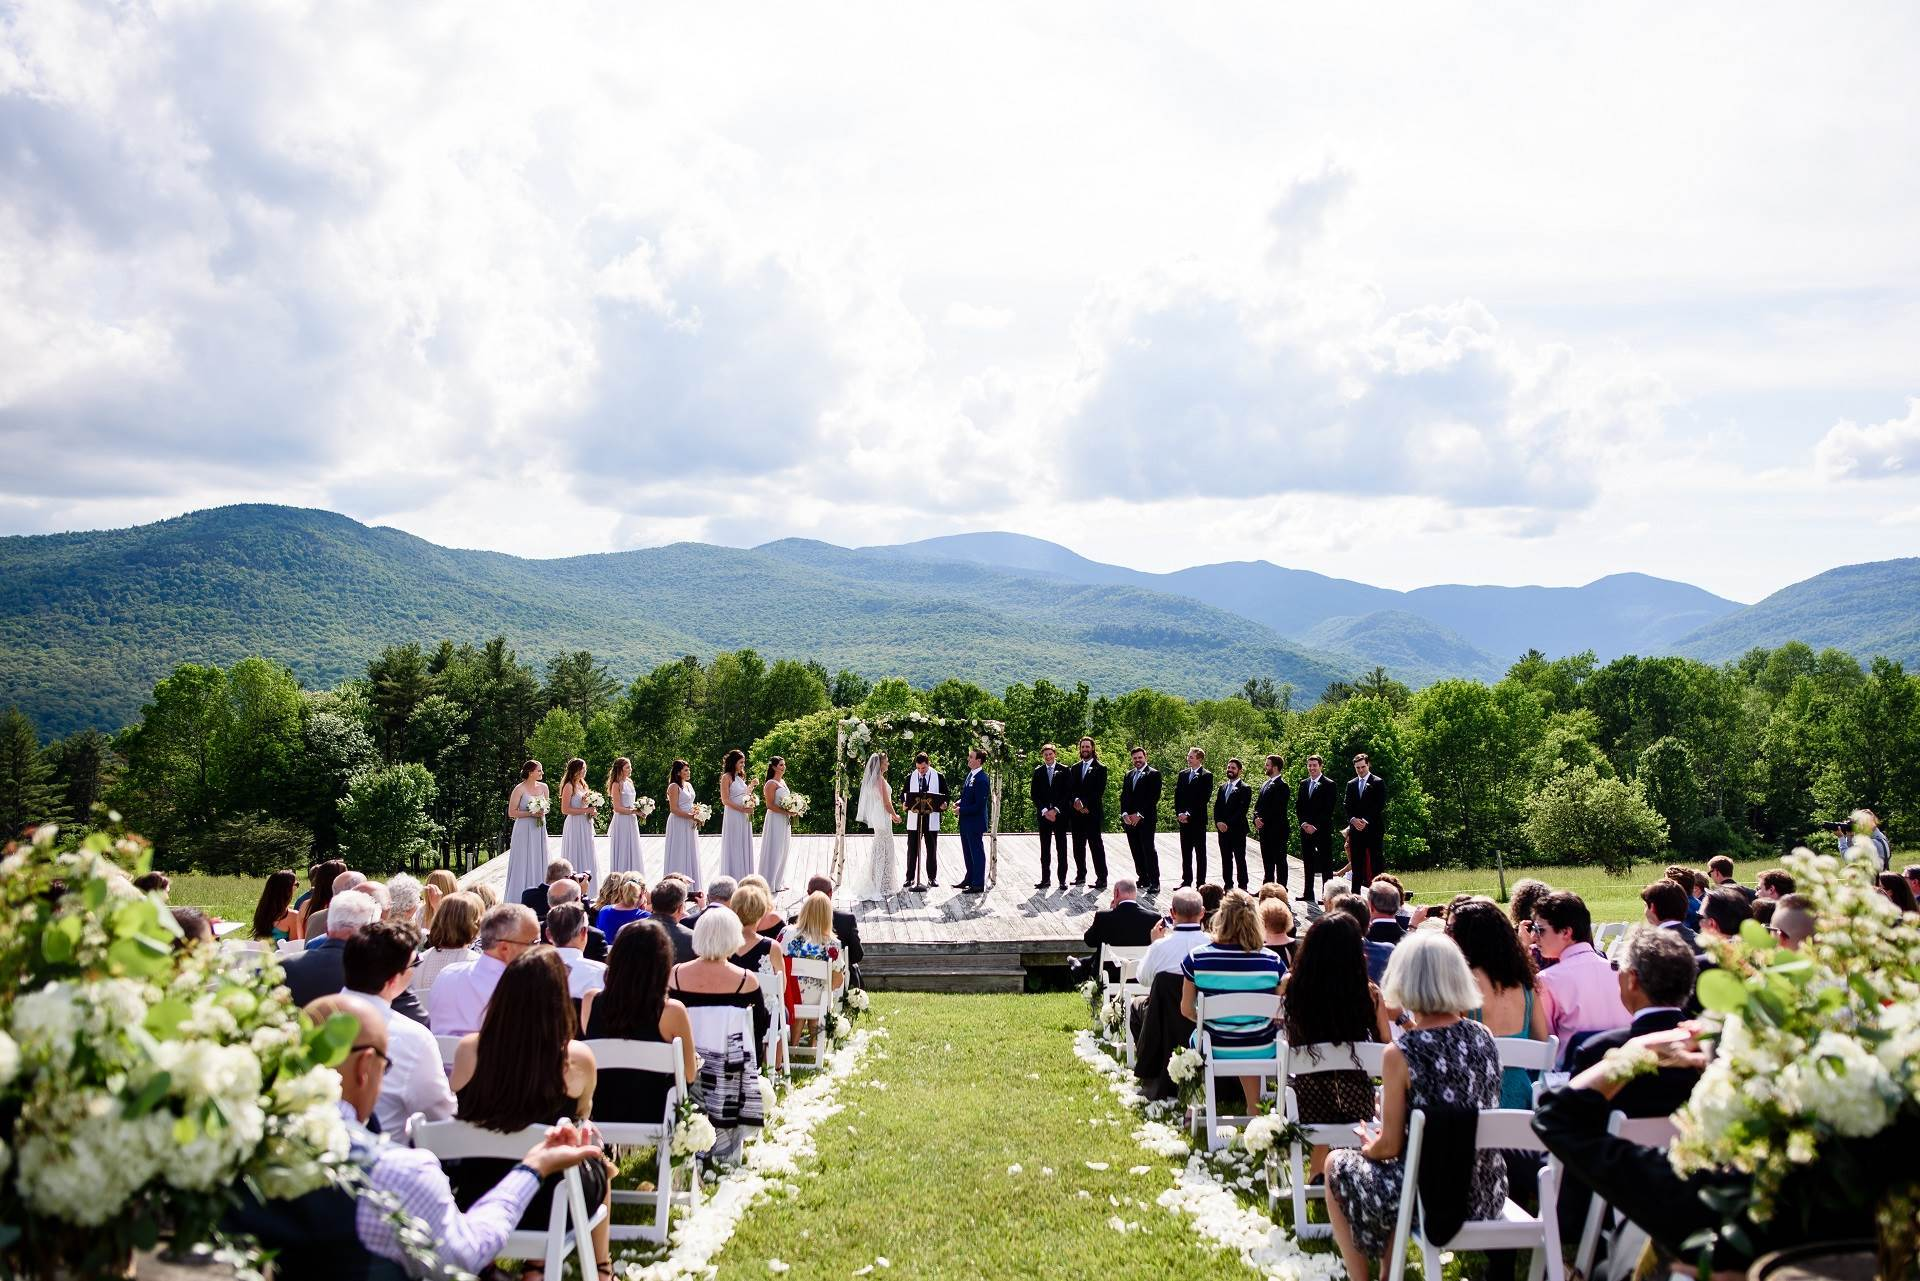 Weddings at our Resort in Stowe, Vermont